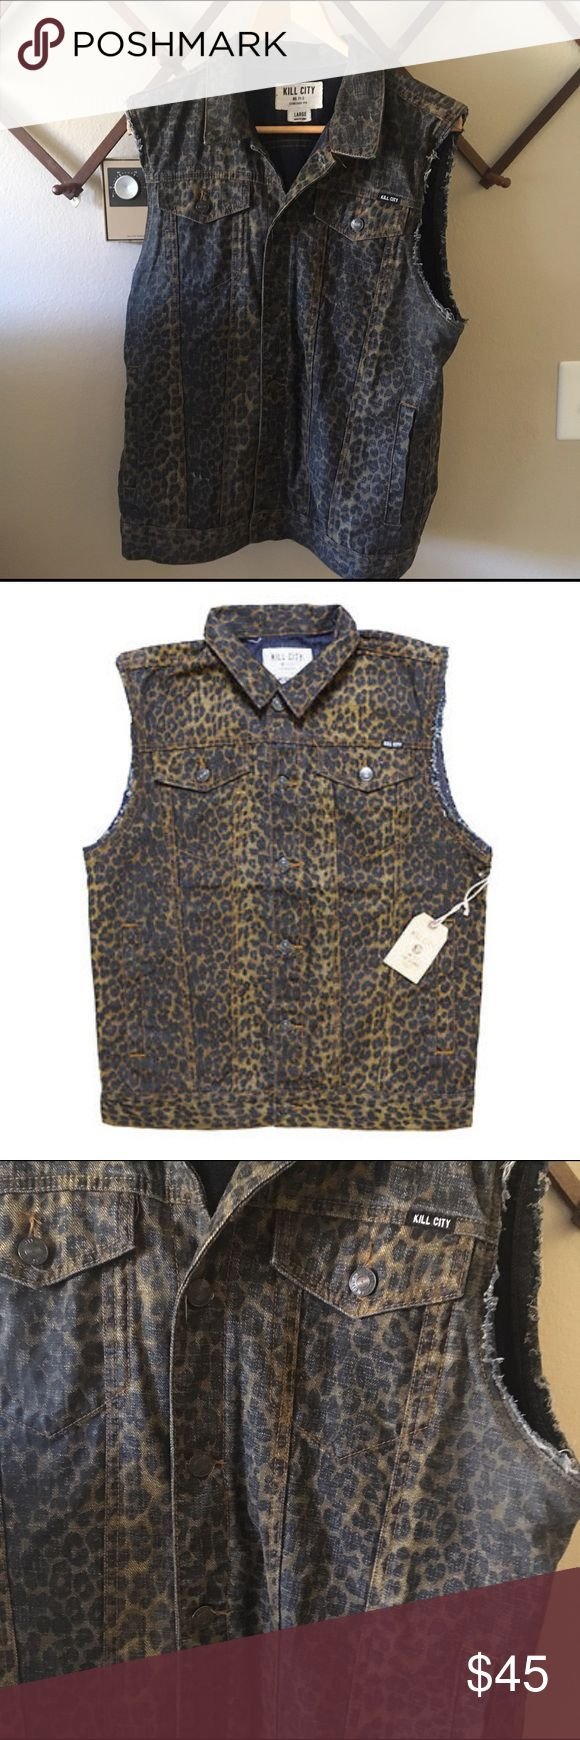 Kill City Leopard Print Jean Vest Awesome jean vest in great used condition. Features inside pockets as well as the outside ones. Jackets & Coats Vests